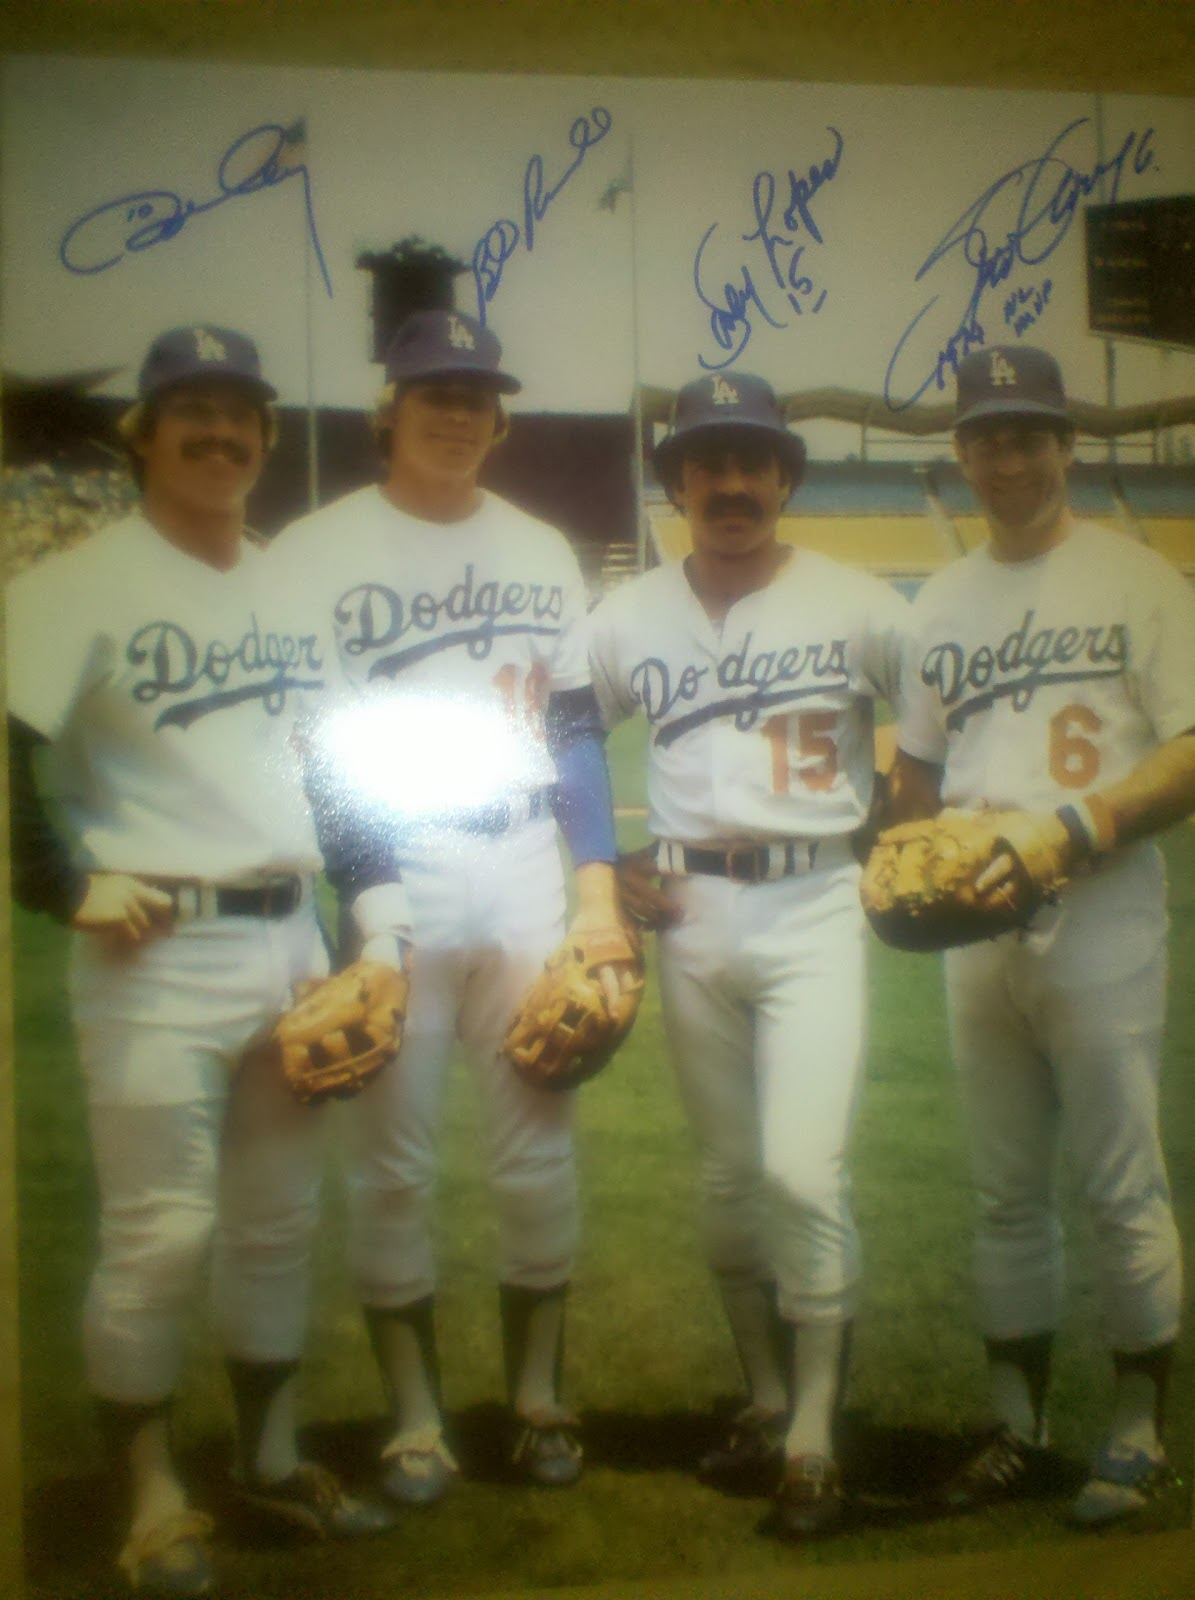 92e0e6b744e I posted info on the upcoming Tommy Lasorda signing which is part of Hall  of Fame Sports 1981 Dodger World Series Champion signing on November 5